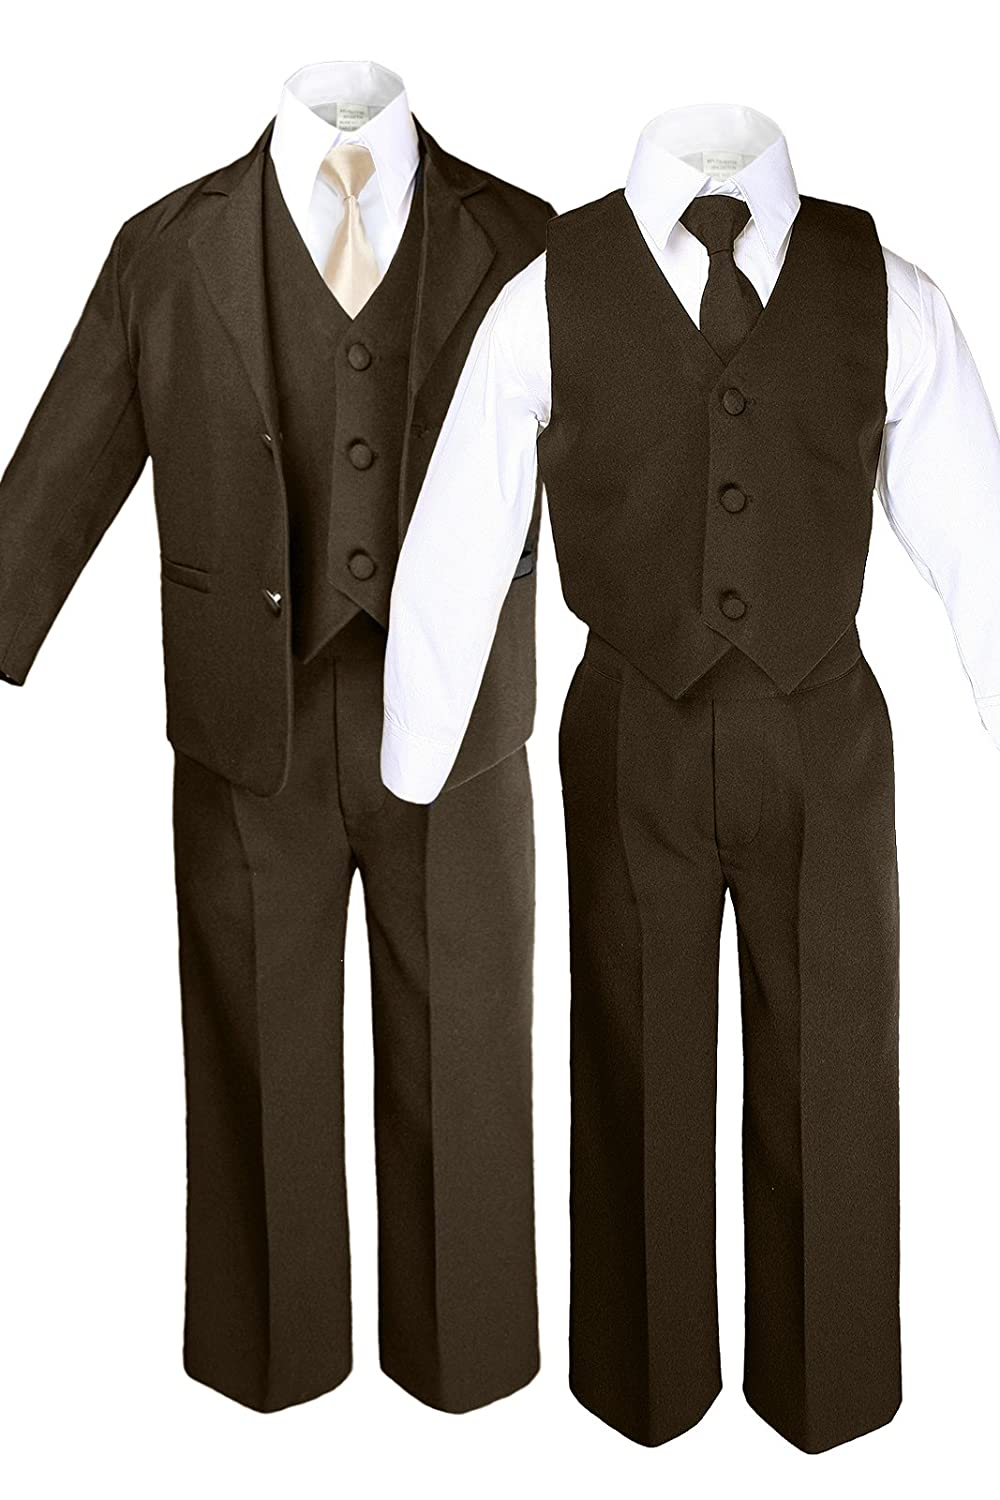 6pc Boy Baby BROWN Formal Tuxedo Suits set with Satin Champagne Necktie SM-12